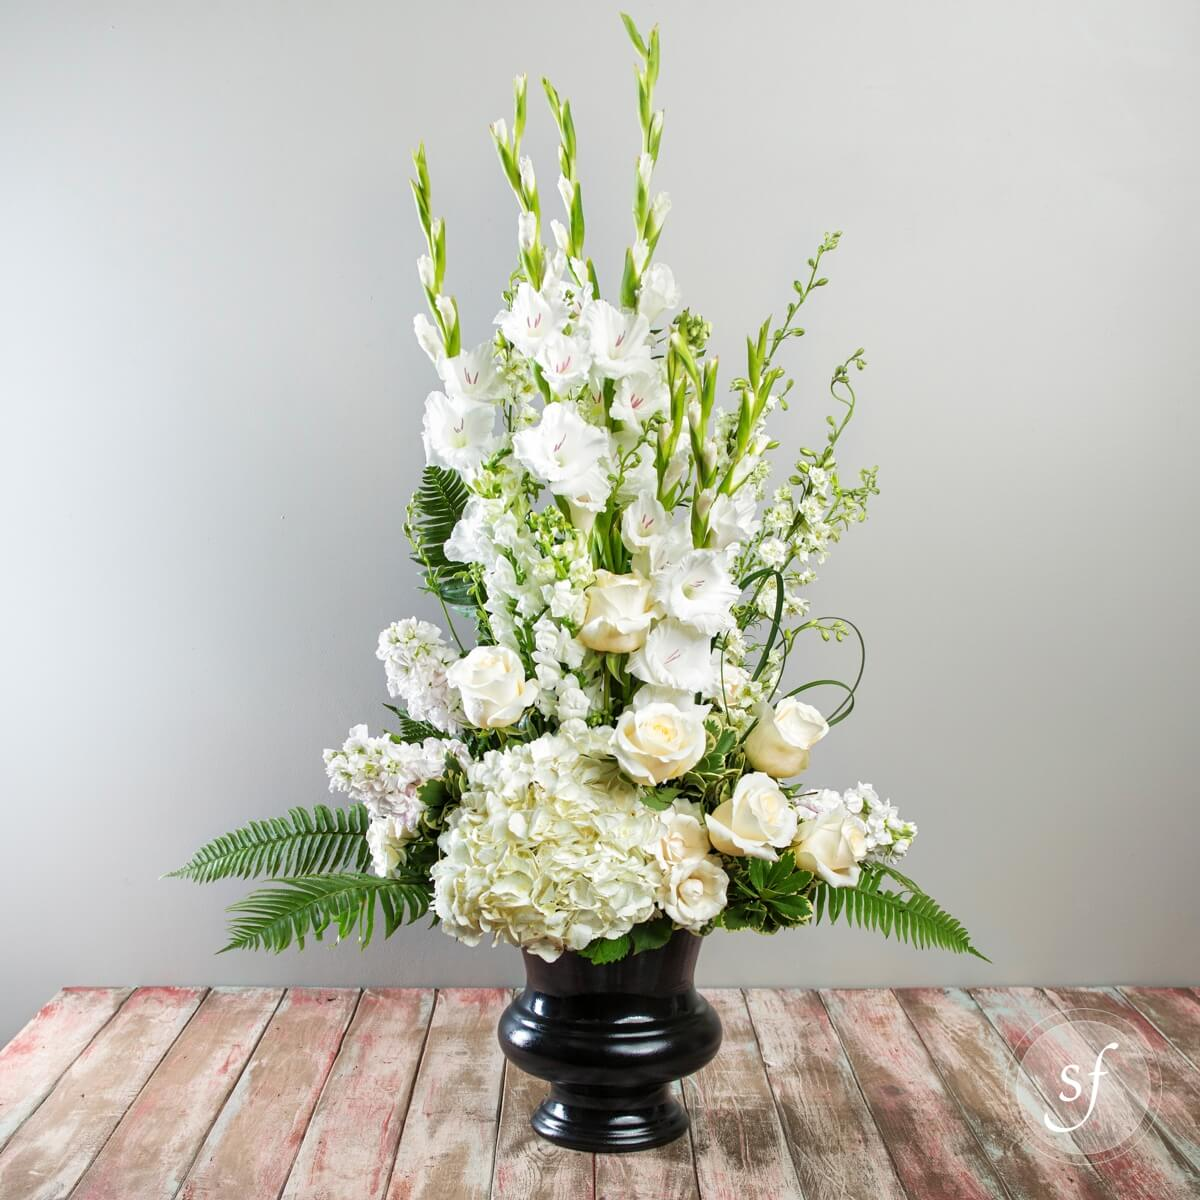 Express Sympathy With This Large And Elegant Funeral Arrangement Featuring White